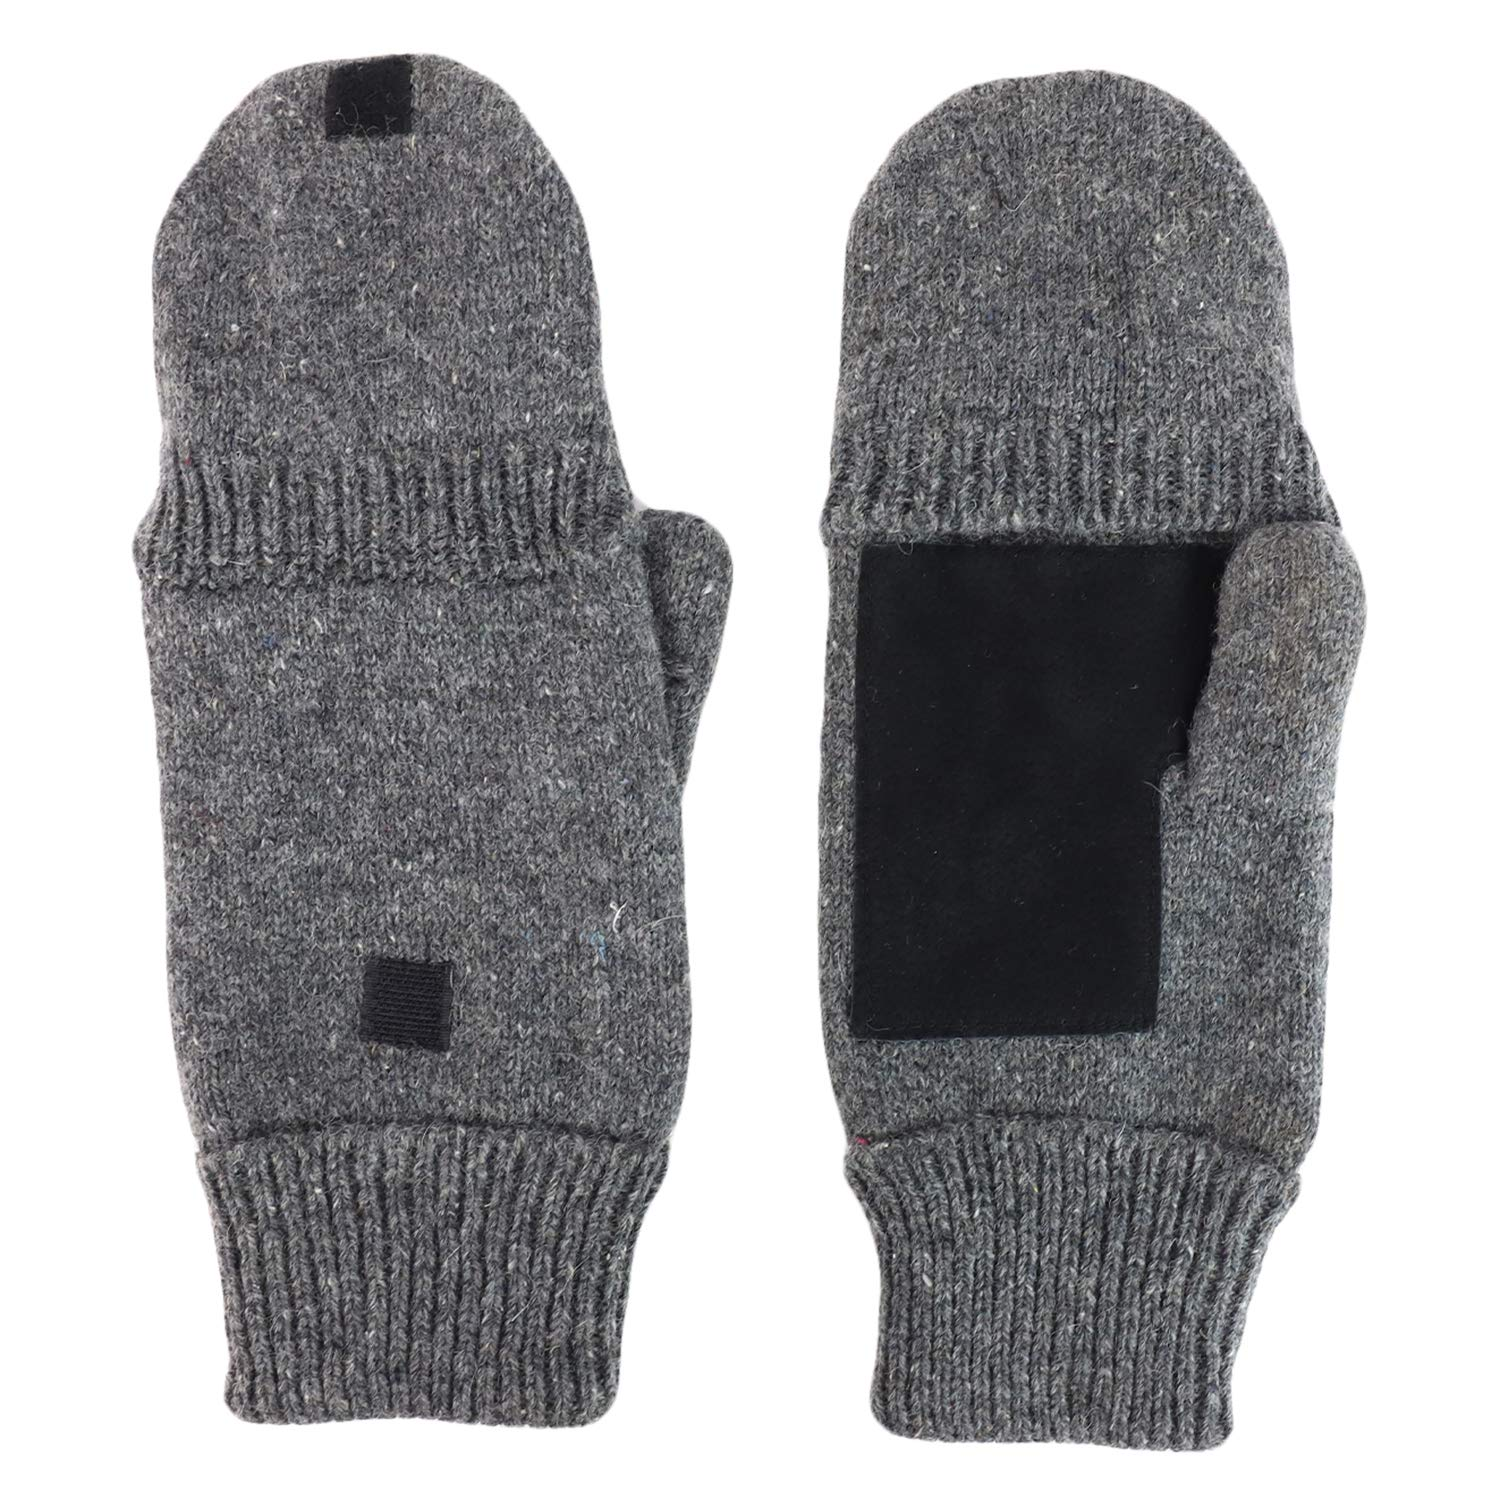 Armycrew Mens Ragg Wool Fingerless Flip Top Winter Gloves with Suede Palm